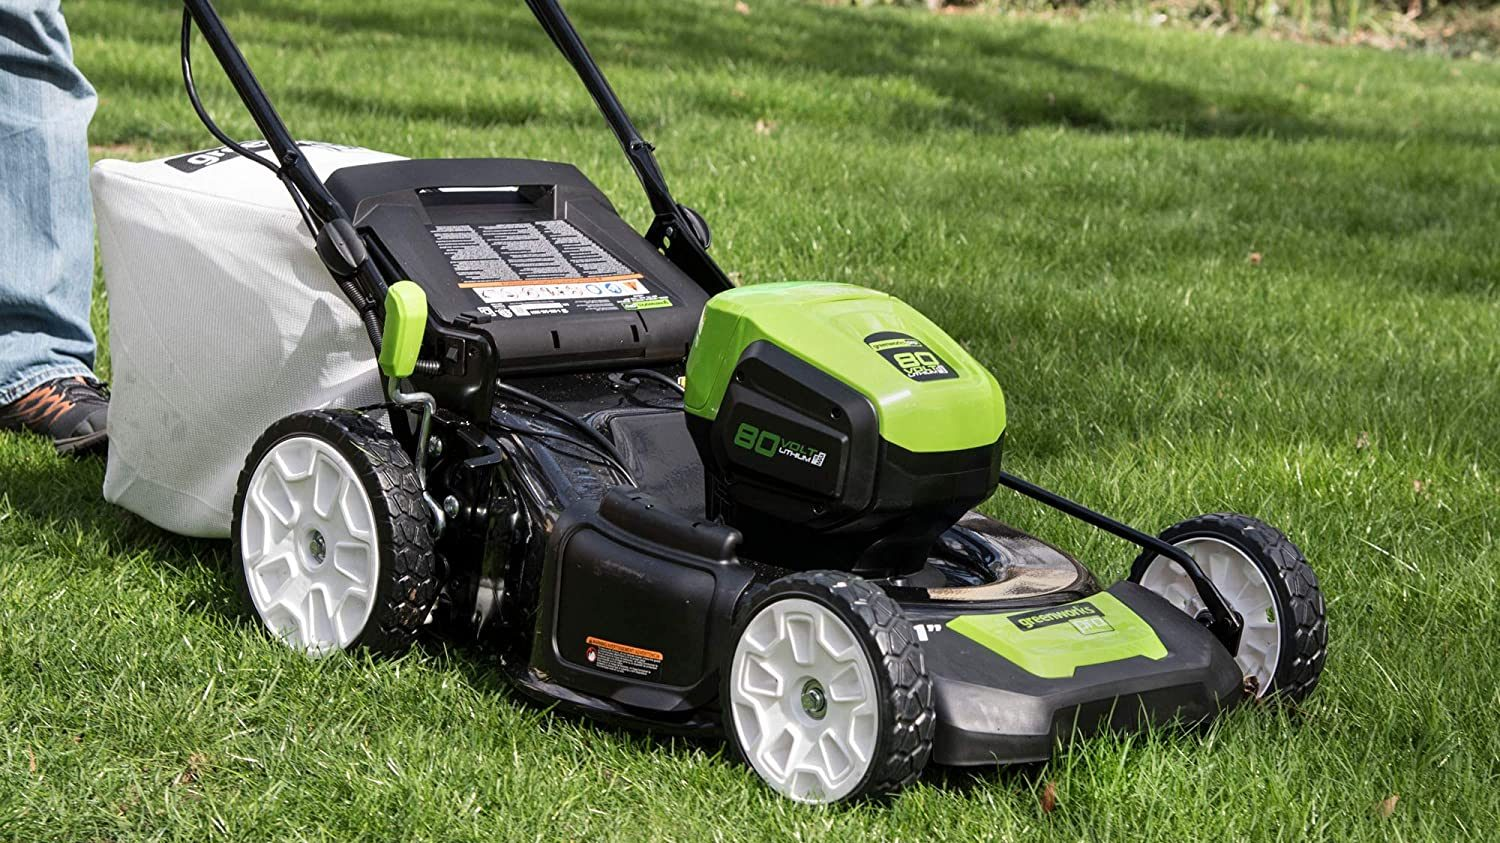 Best Upgrade for Previous Battery-Powered Mower Owners